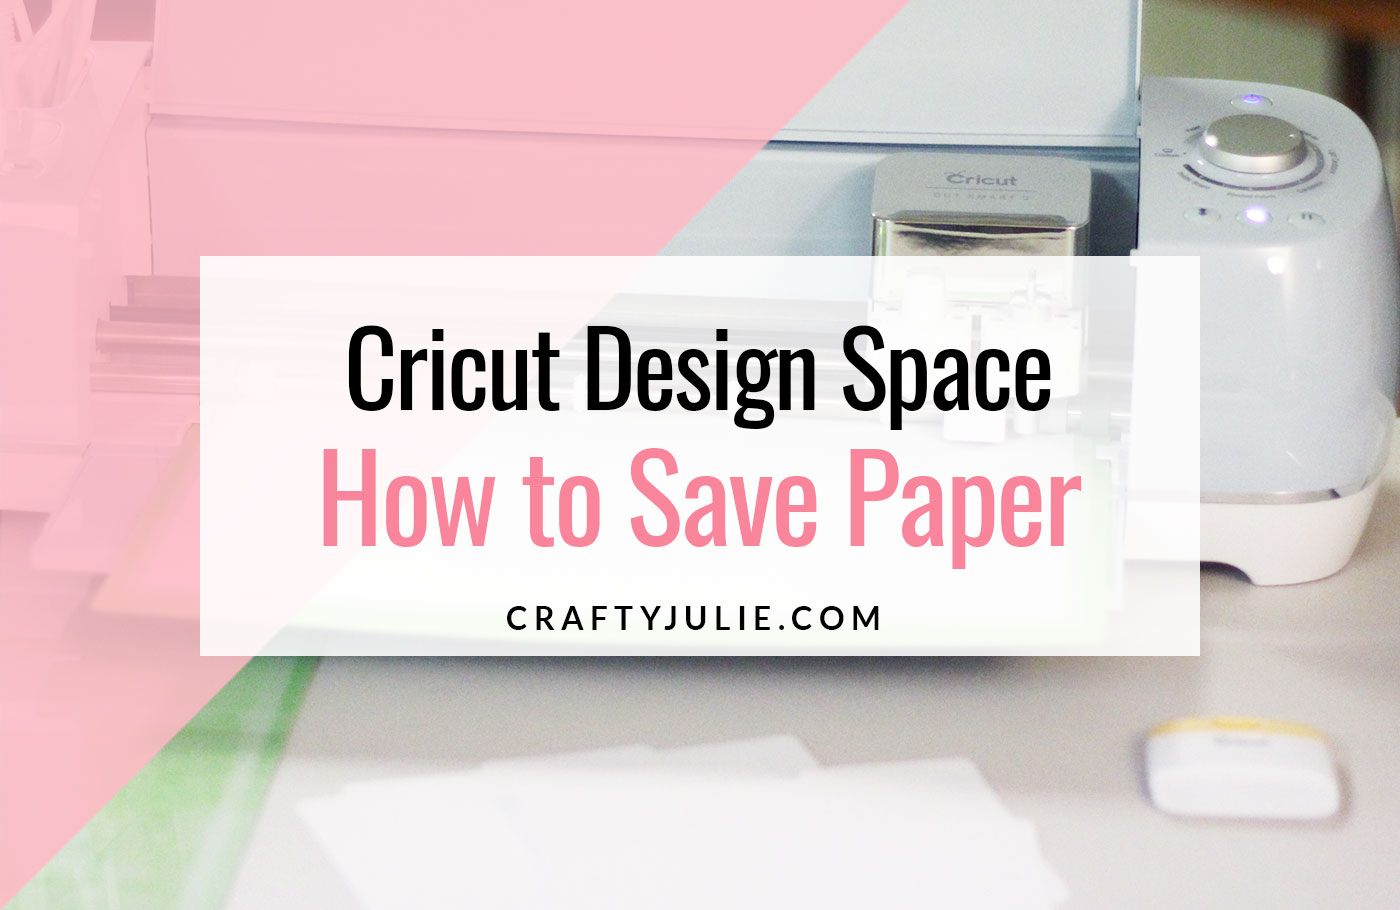 Cricut Design Studio How to Save Paper Tutorial